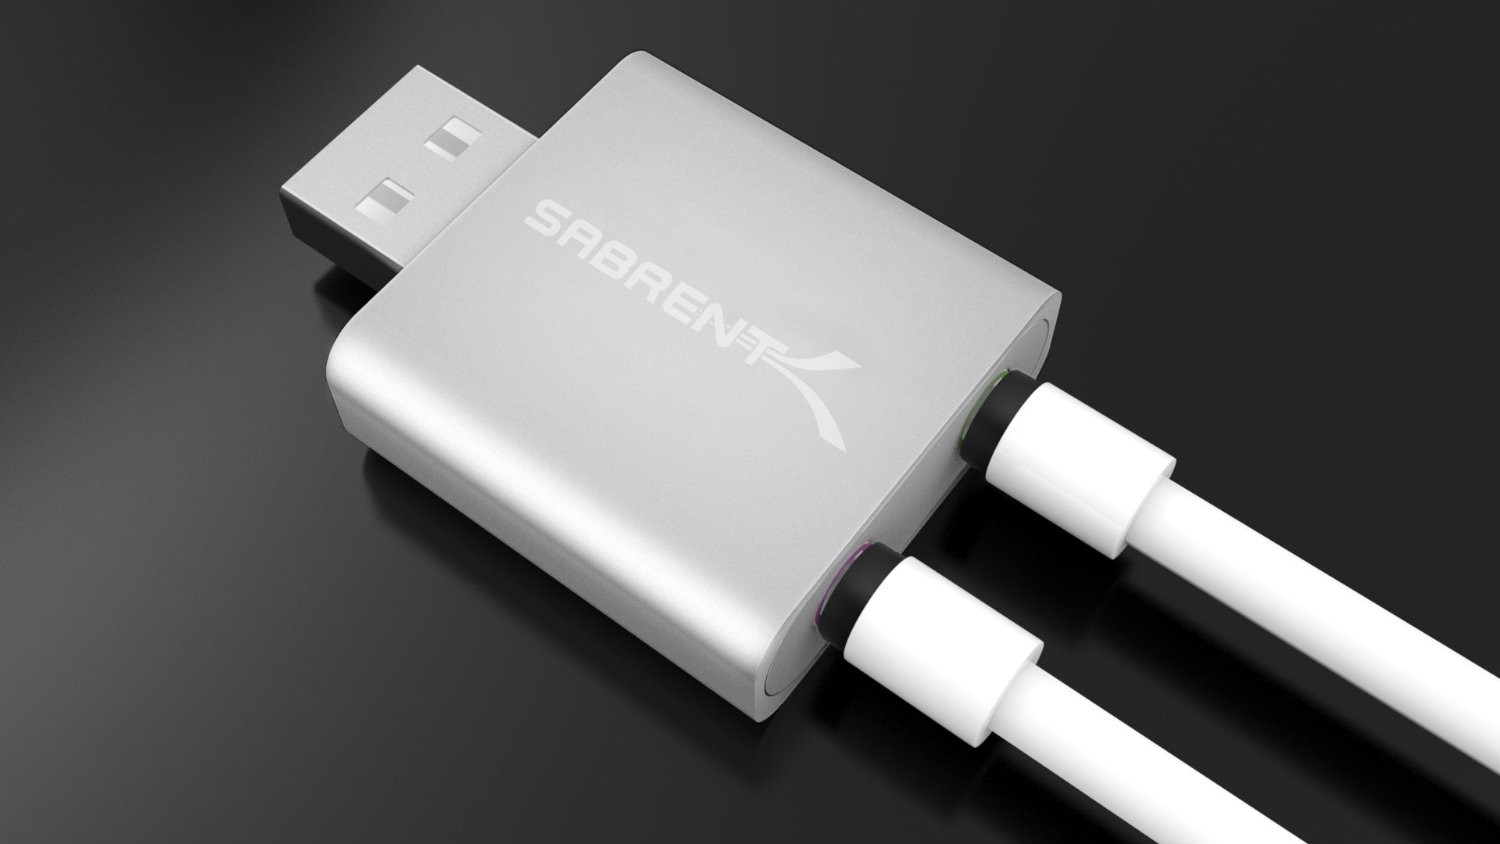 Sabrent Aluminum USB External Stereo Sound Adapter iMic and Recorder for Windows and Mac - Plug and Play - Replaces Griffin iMic, AU-EMAC